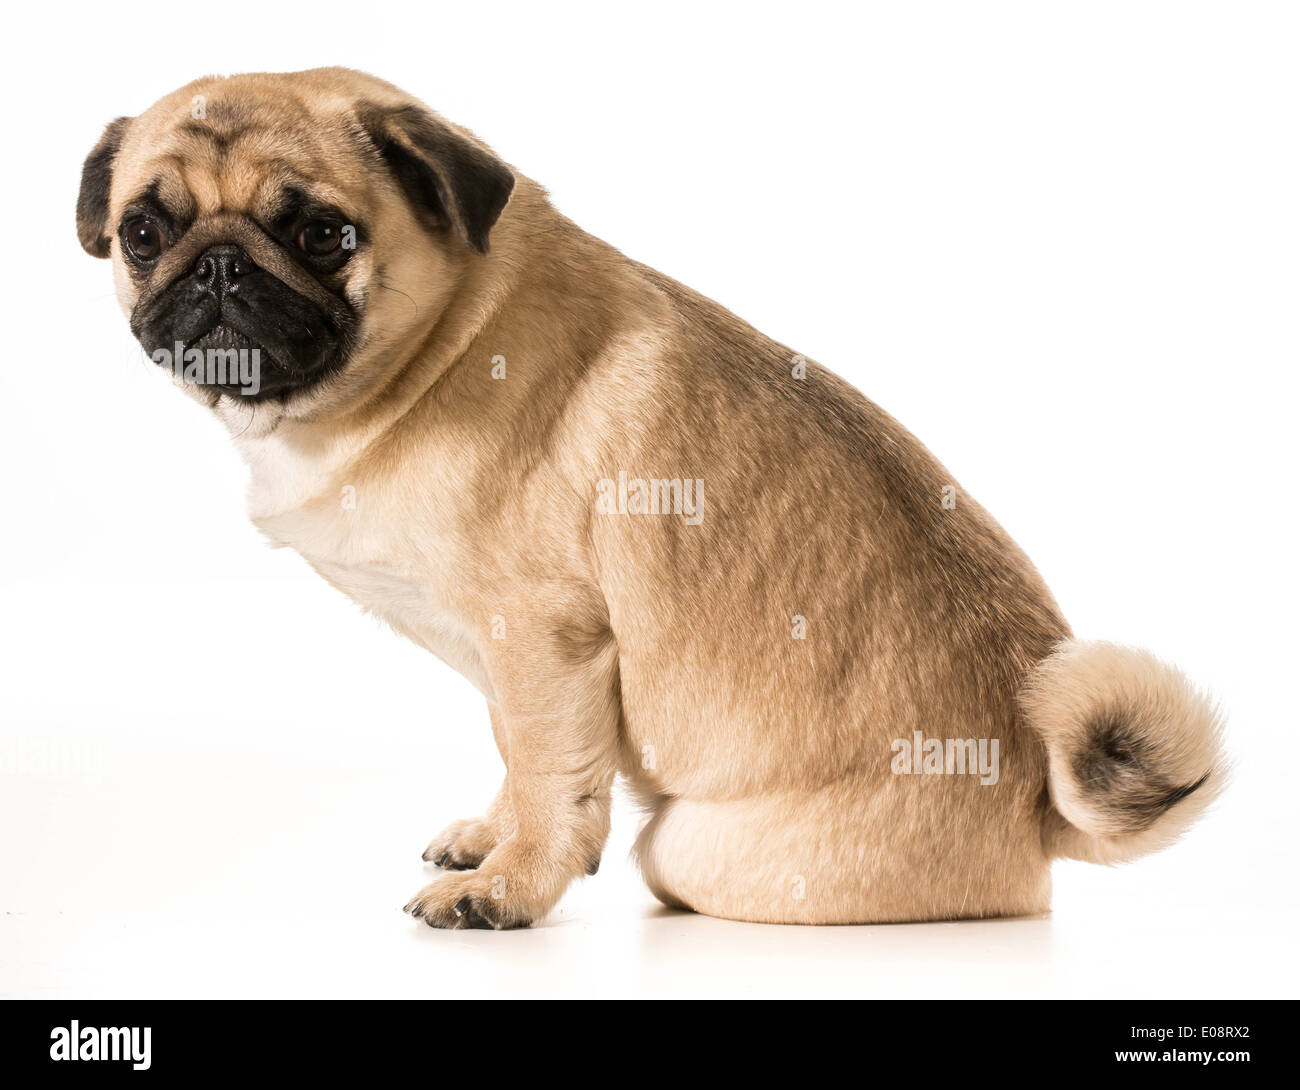 worried dog - pug with worried expression sitting on white background - Stock Image